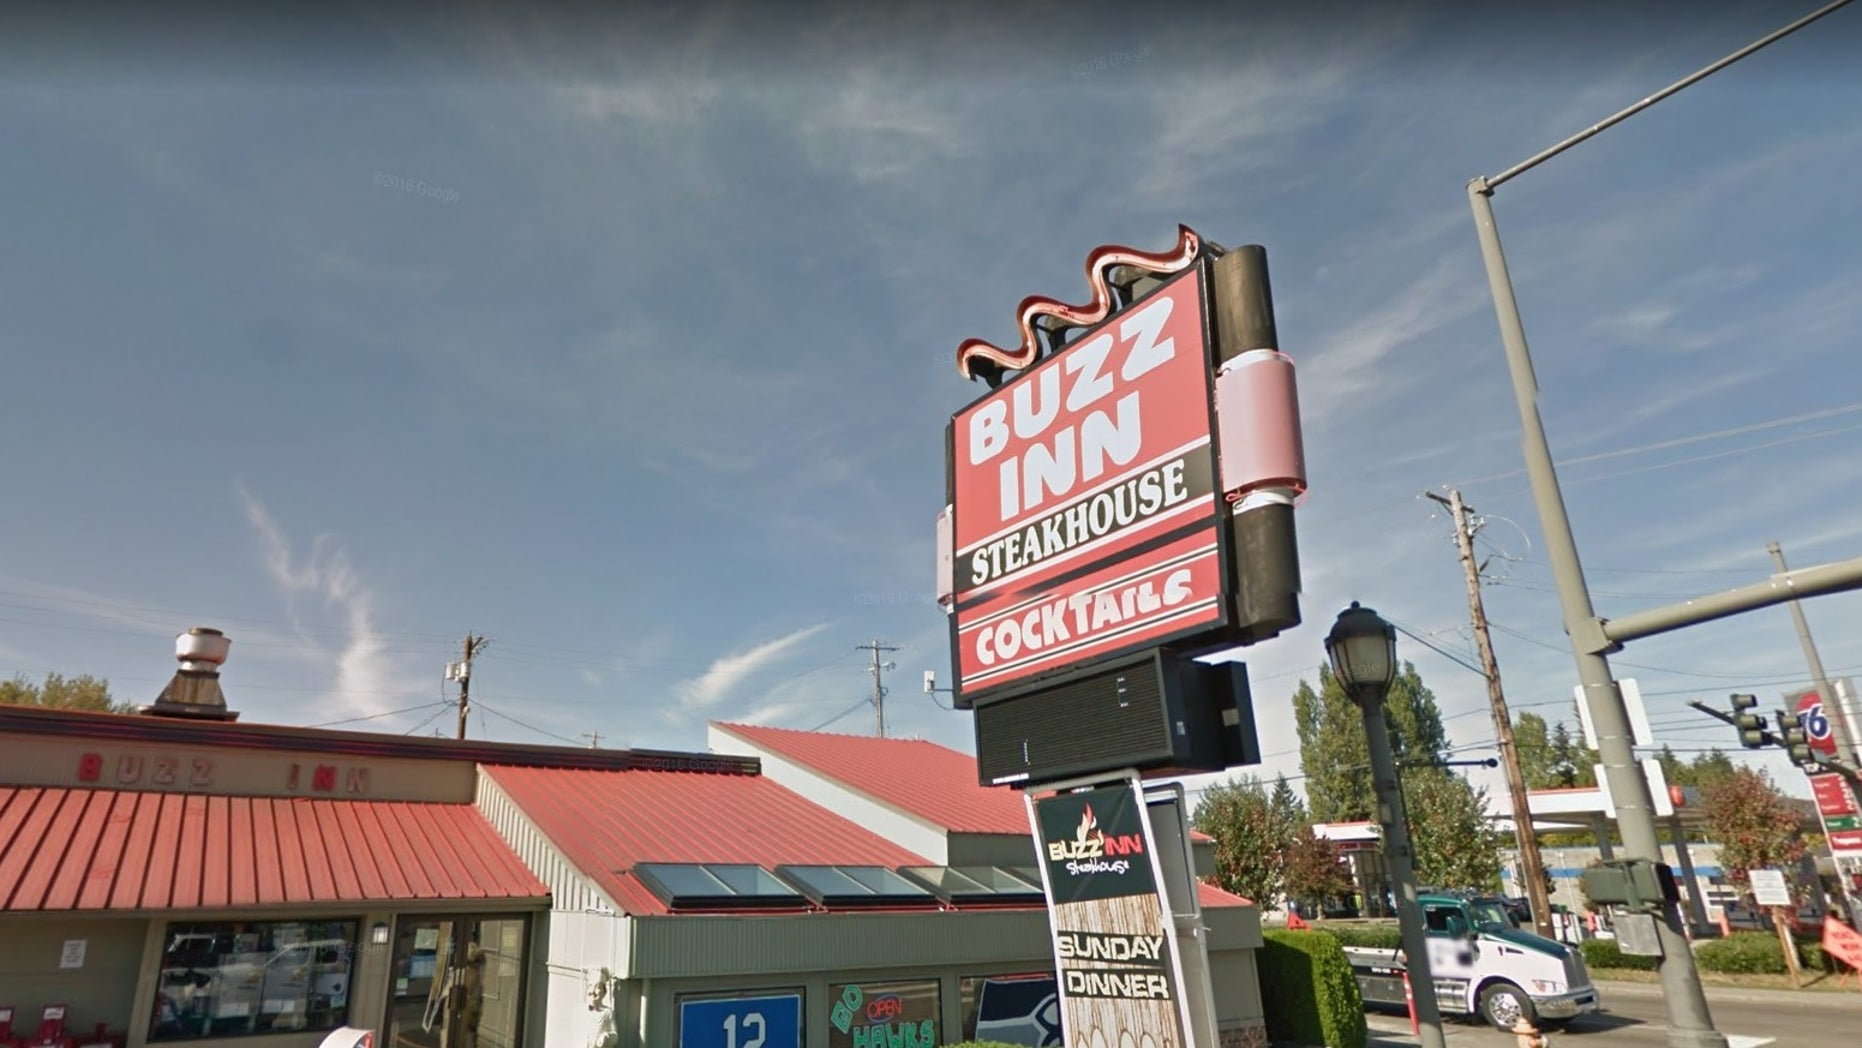 A pregnant woman was reportedly refused service at the Buzz Inn Steakhouse because of her exposed stomach.